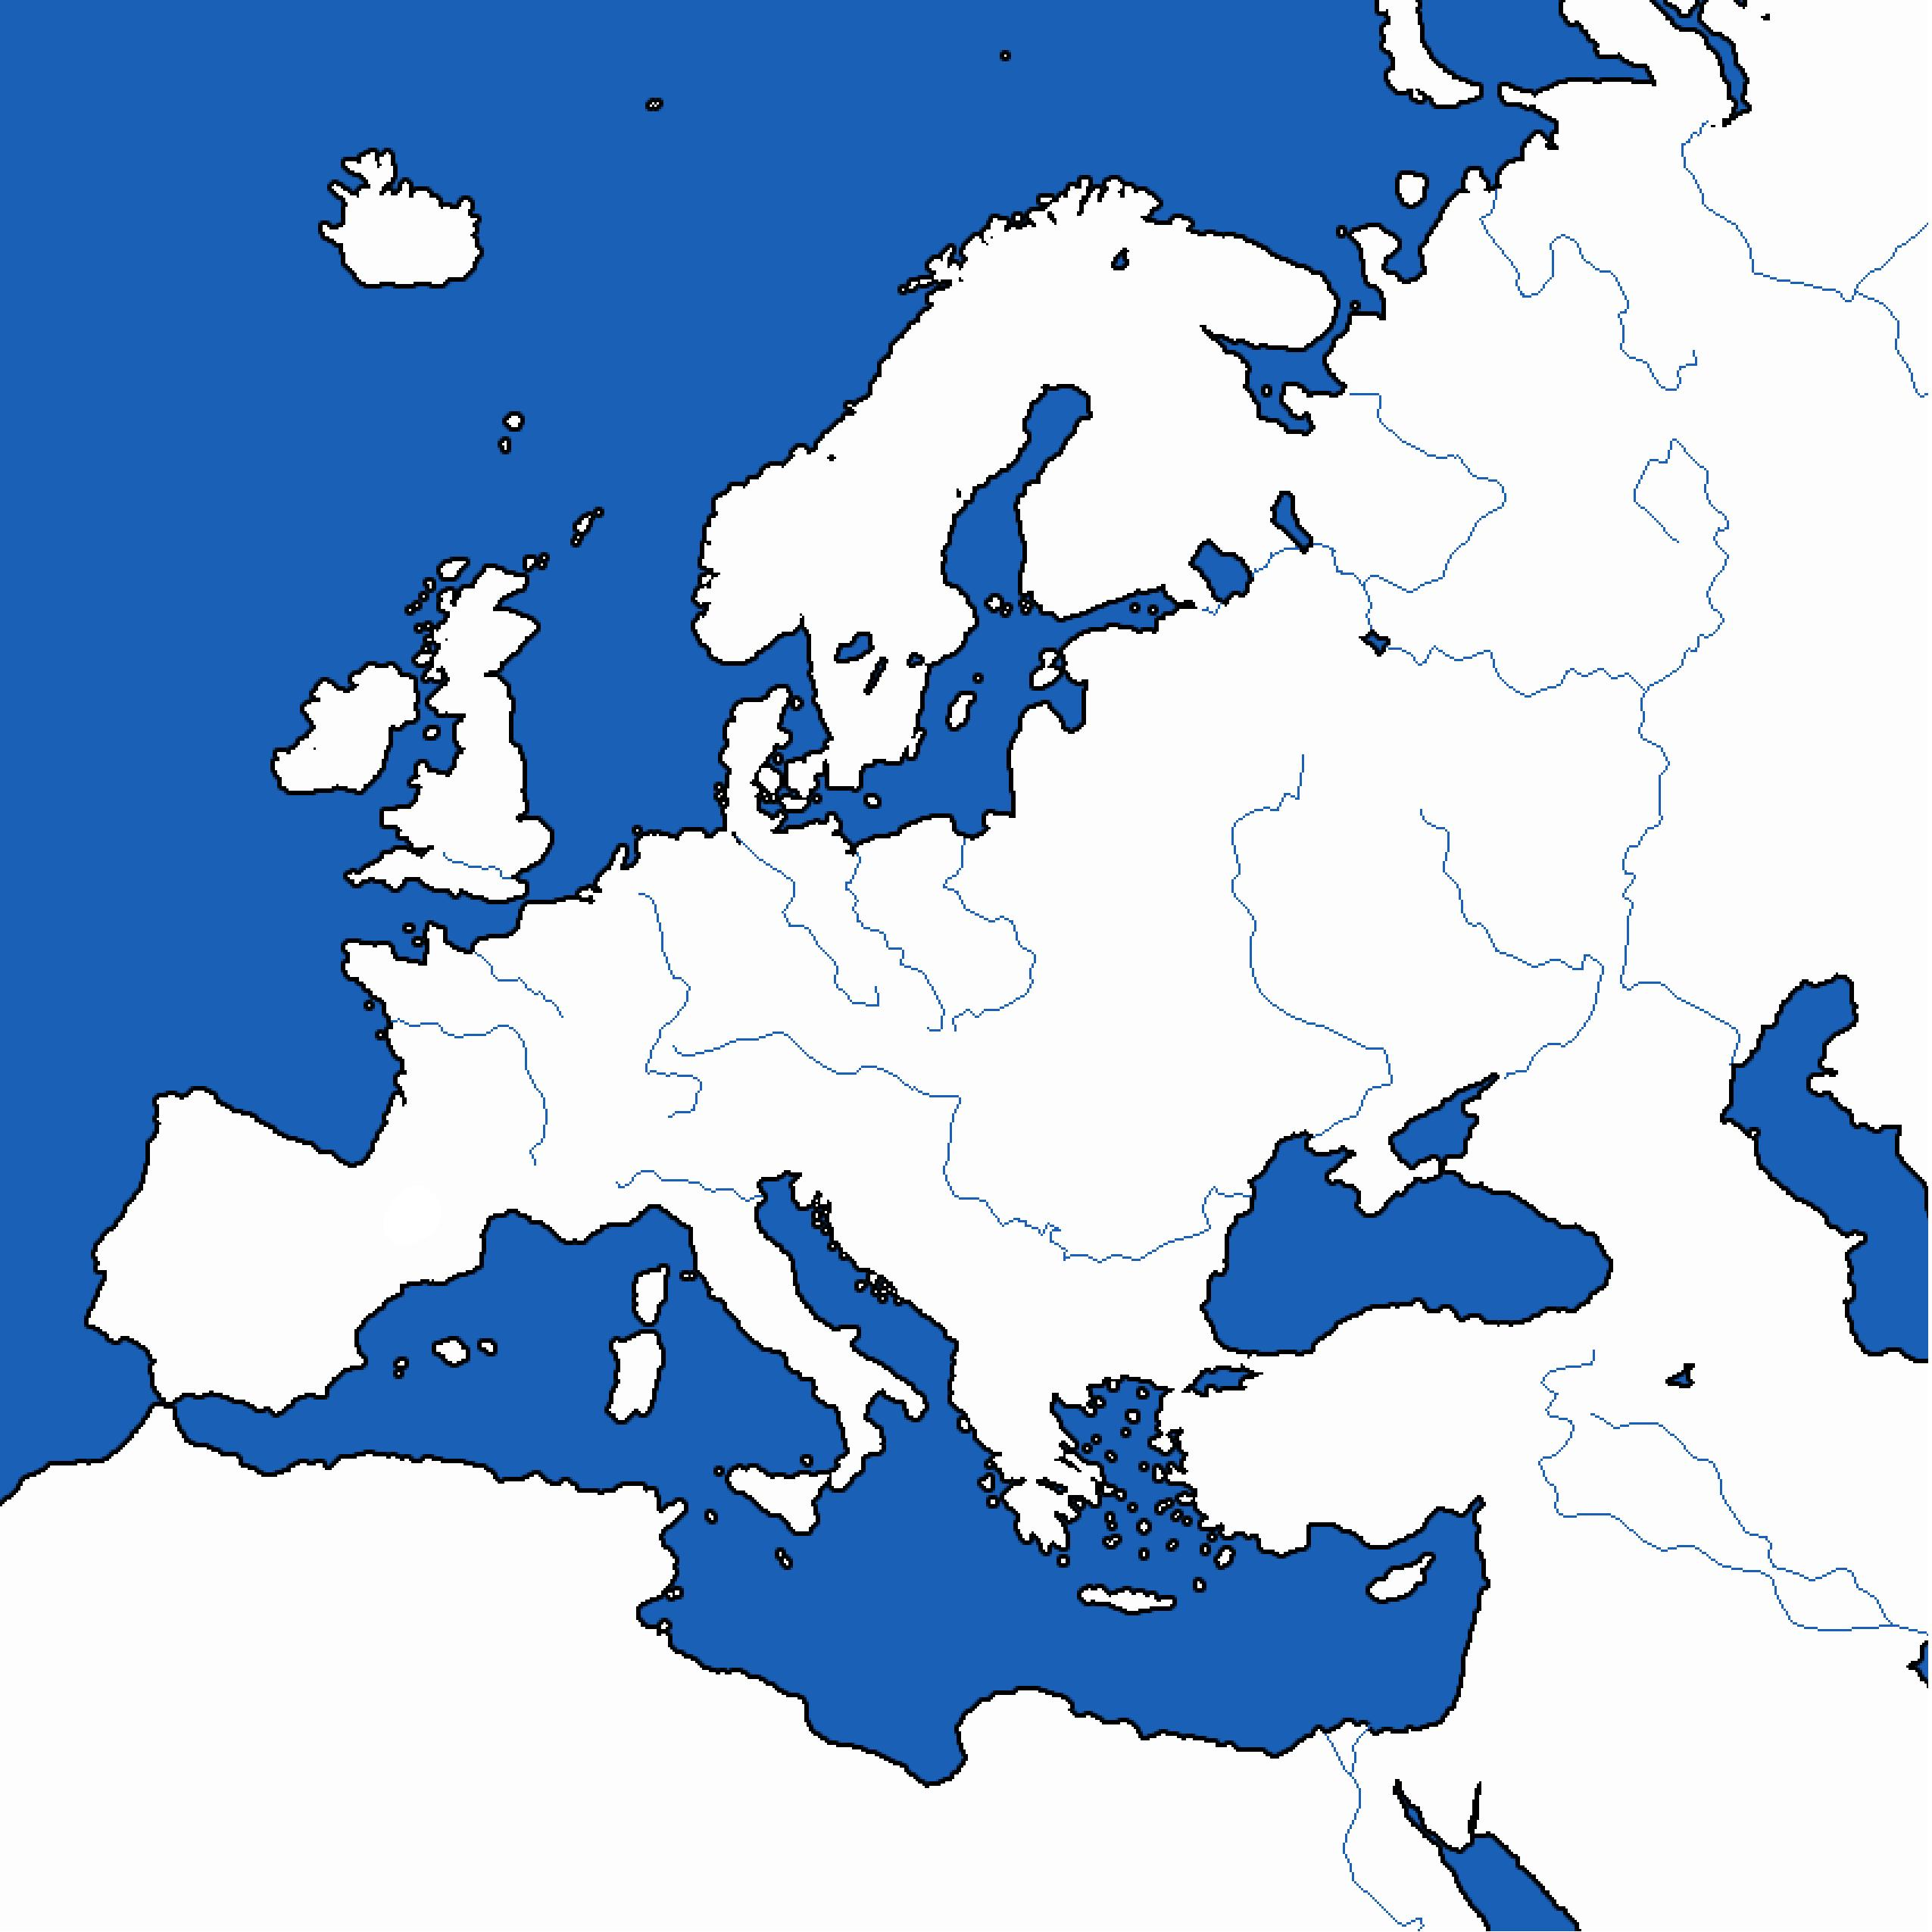 Map Of Europe Simple.